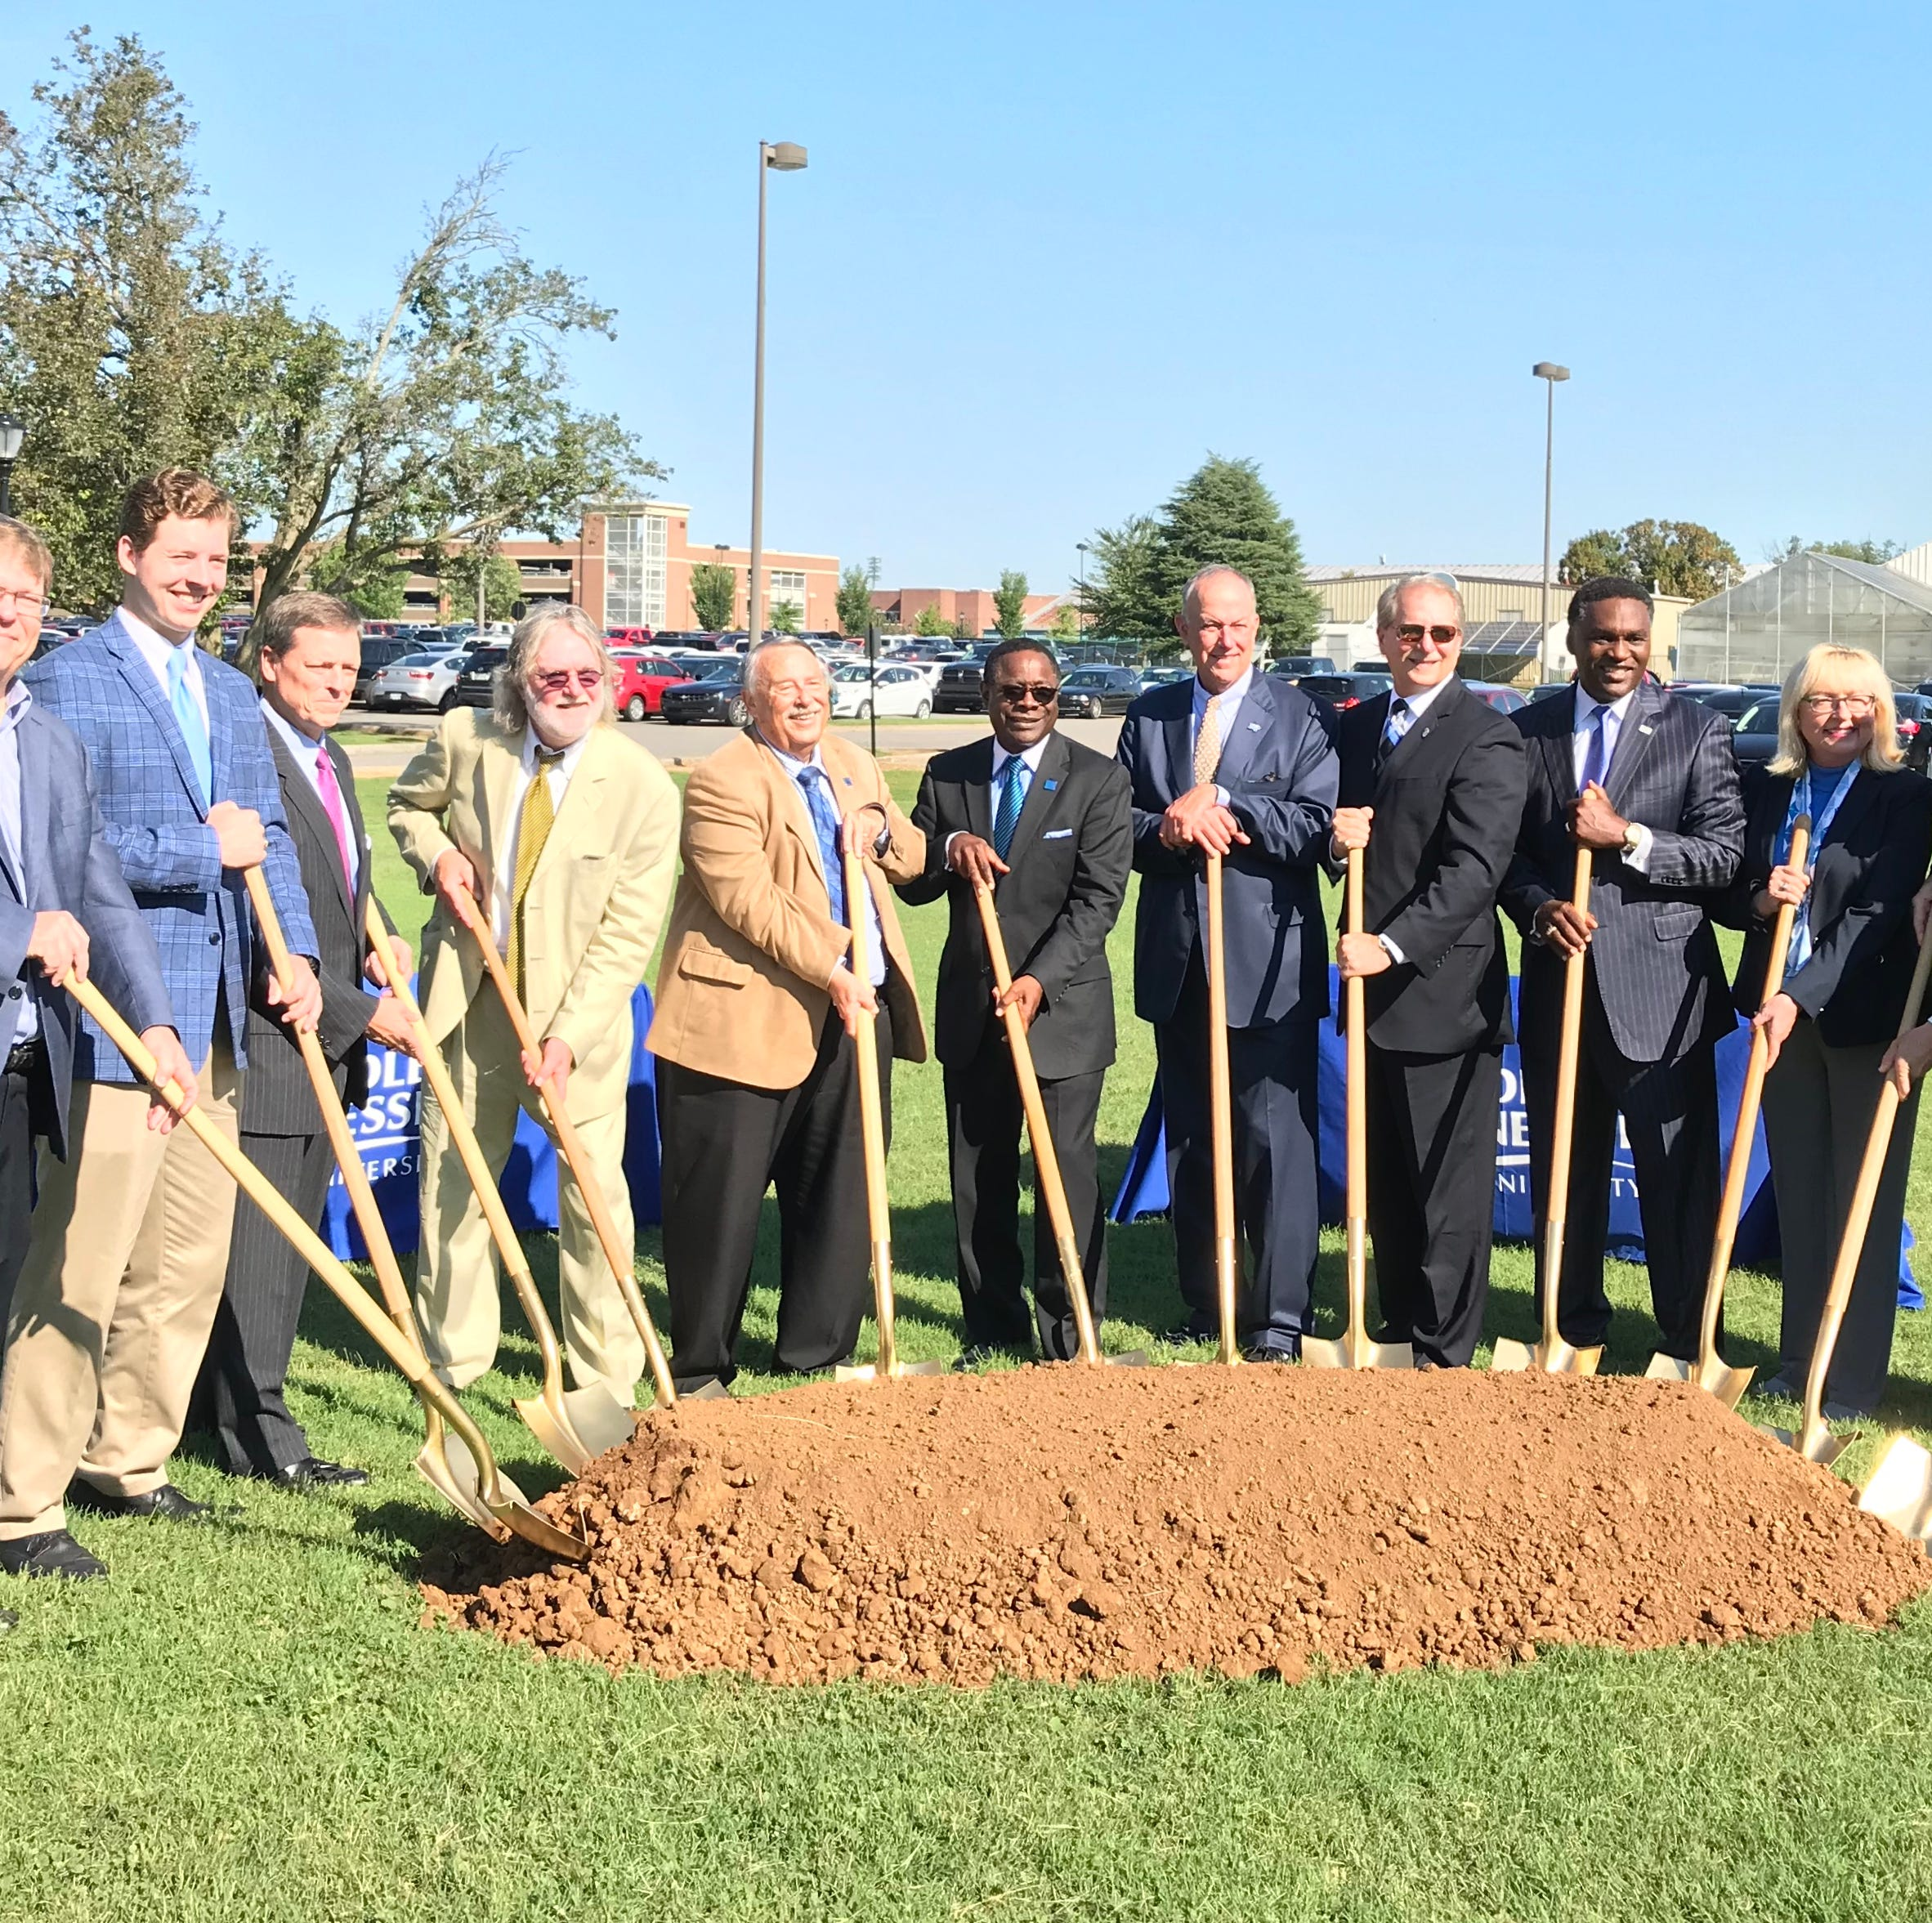 In  this Tuesday, Sept. 18, 2018 photo, MTSU breaks ground on a $39.6 million building that will house the departments of criminal justice, psychology and social works. The projected completion date for this project is summer 2020.